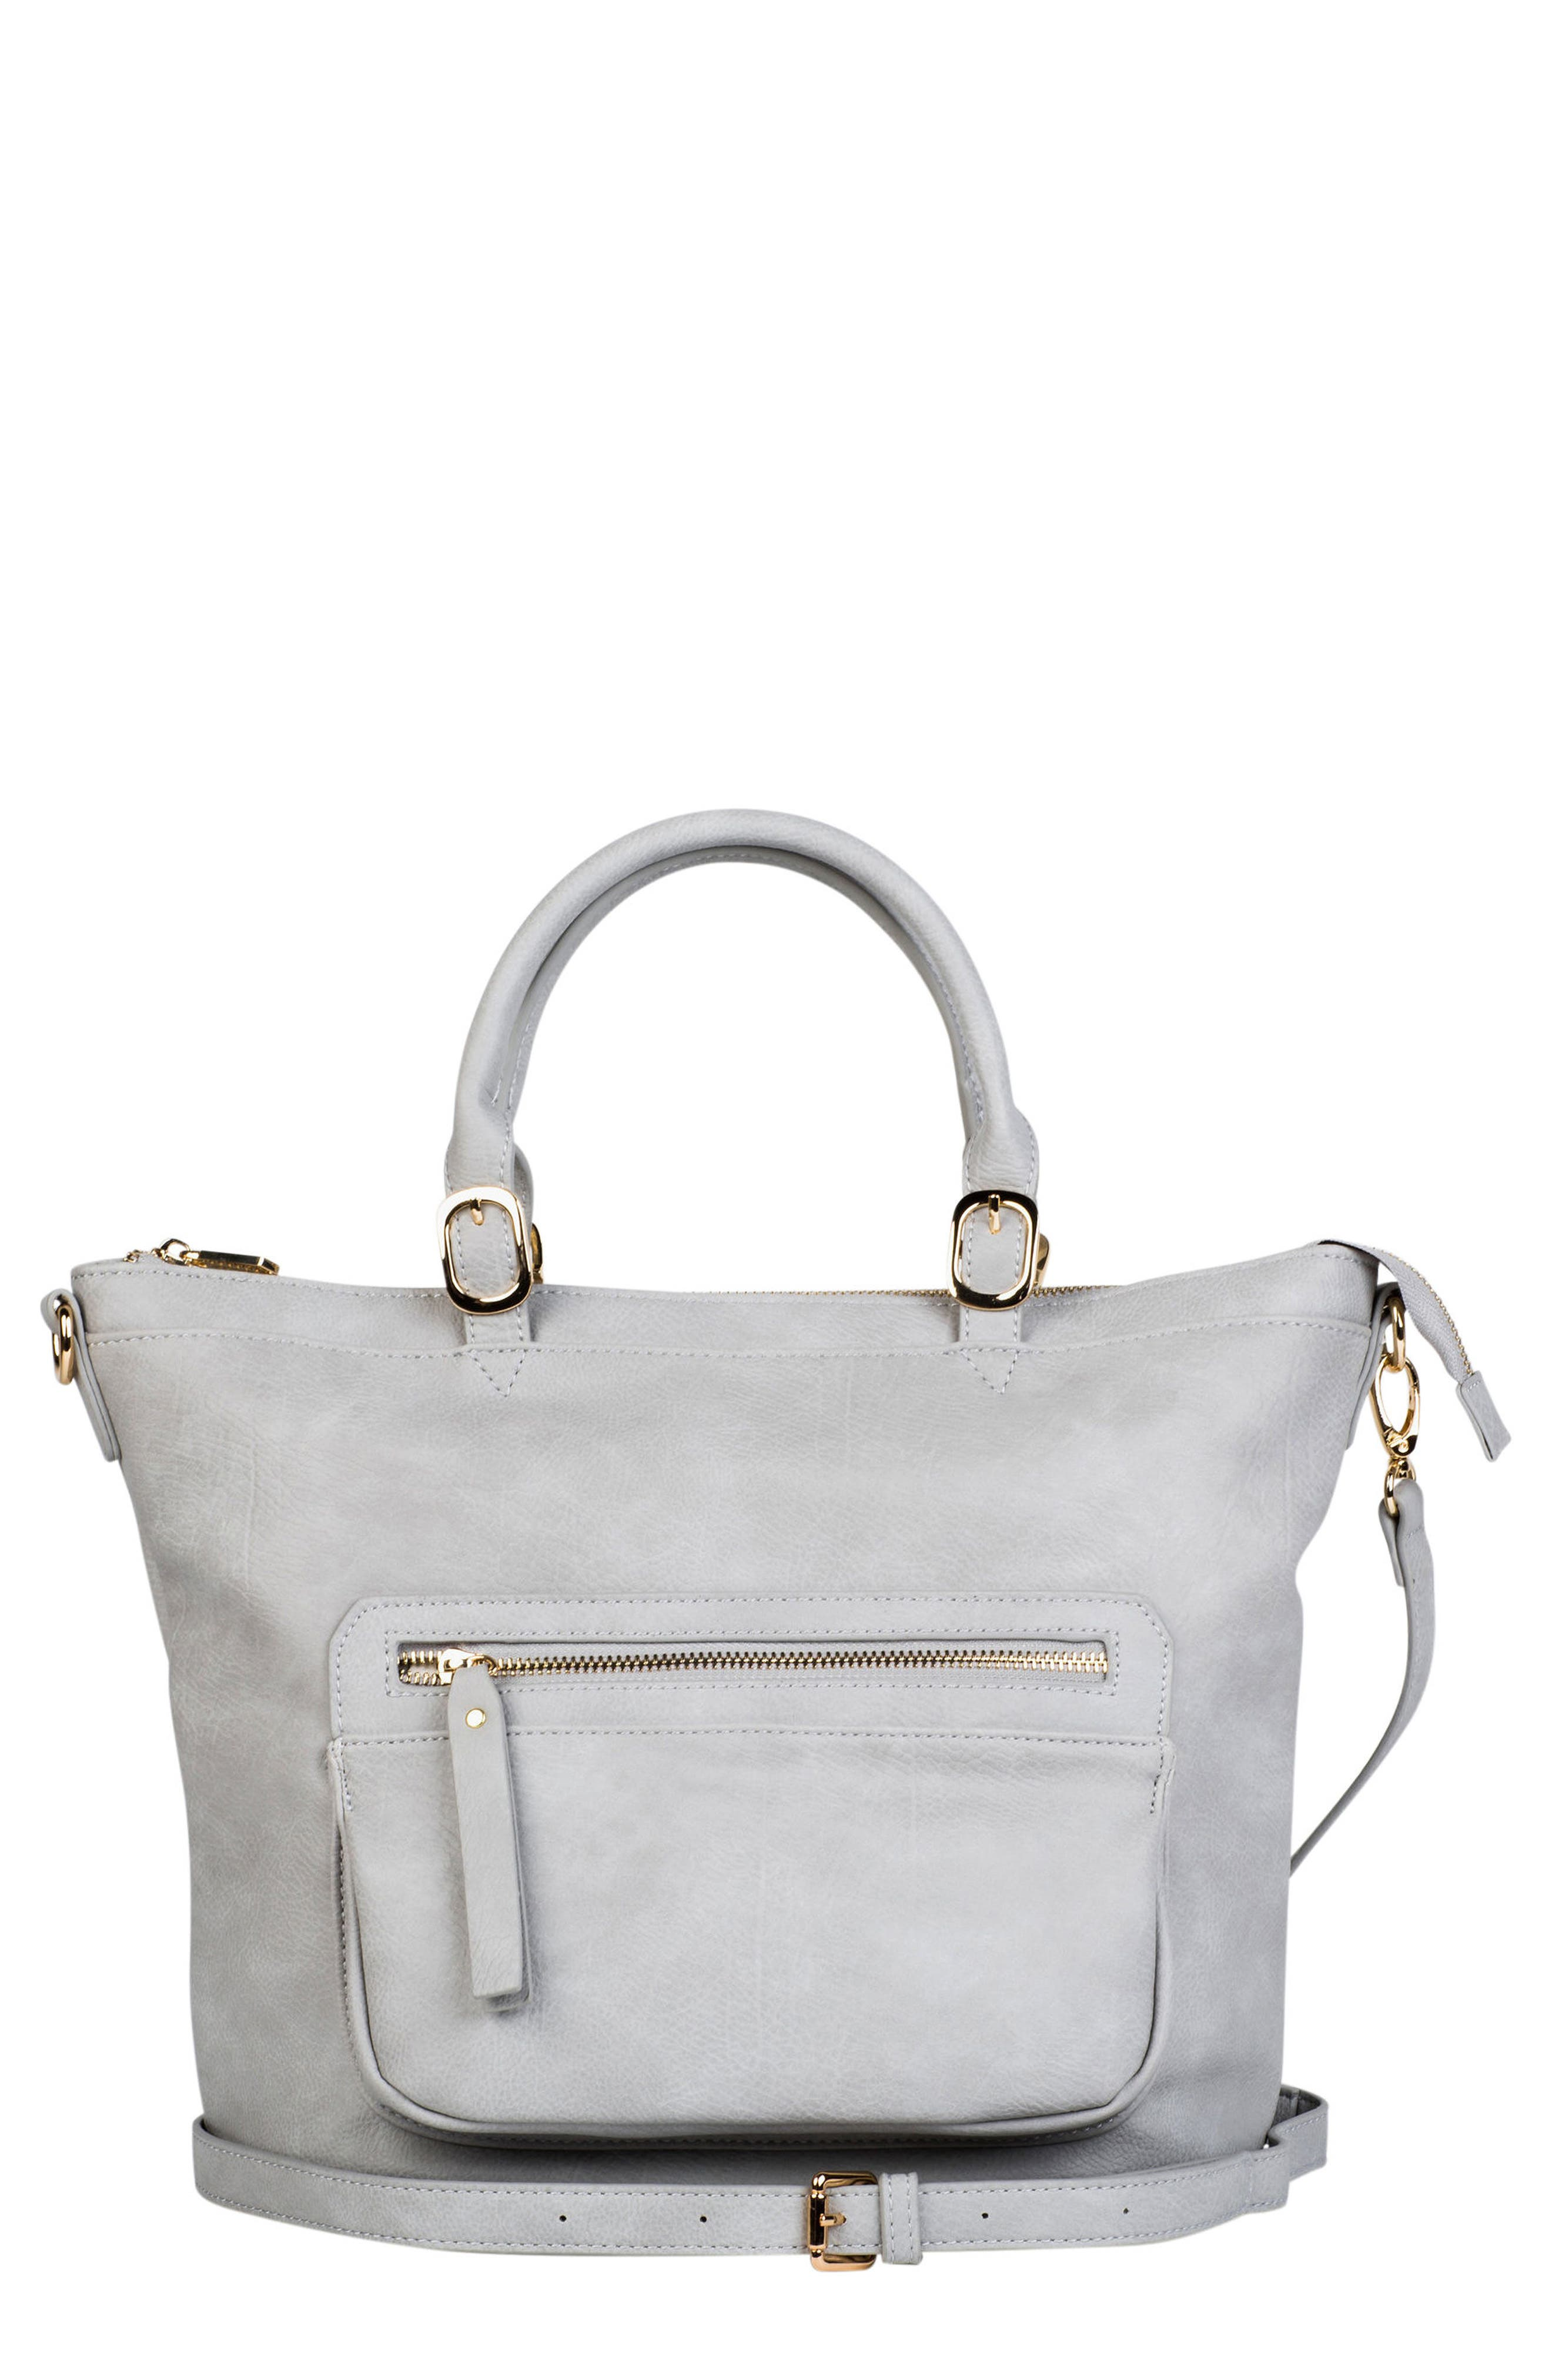 Illusion Vegan Leather Tote,                             Main thumbnail 1, color,                             Grey